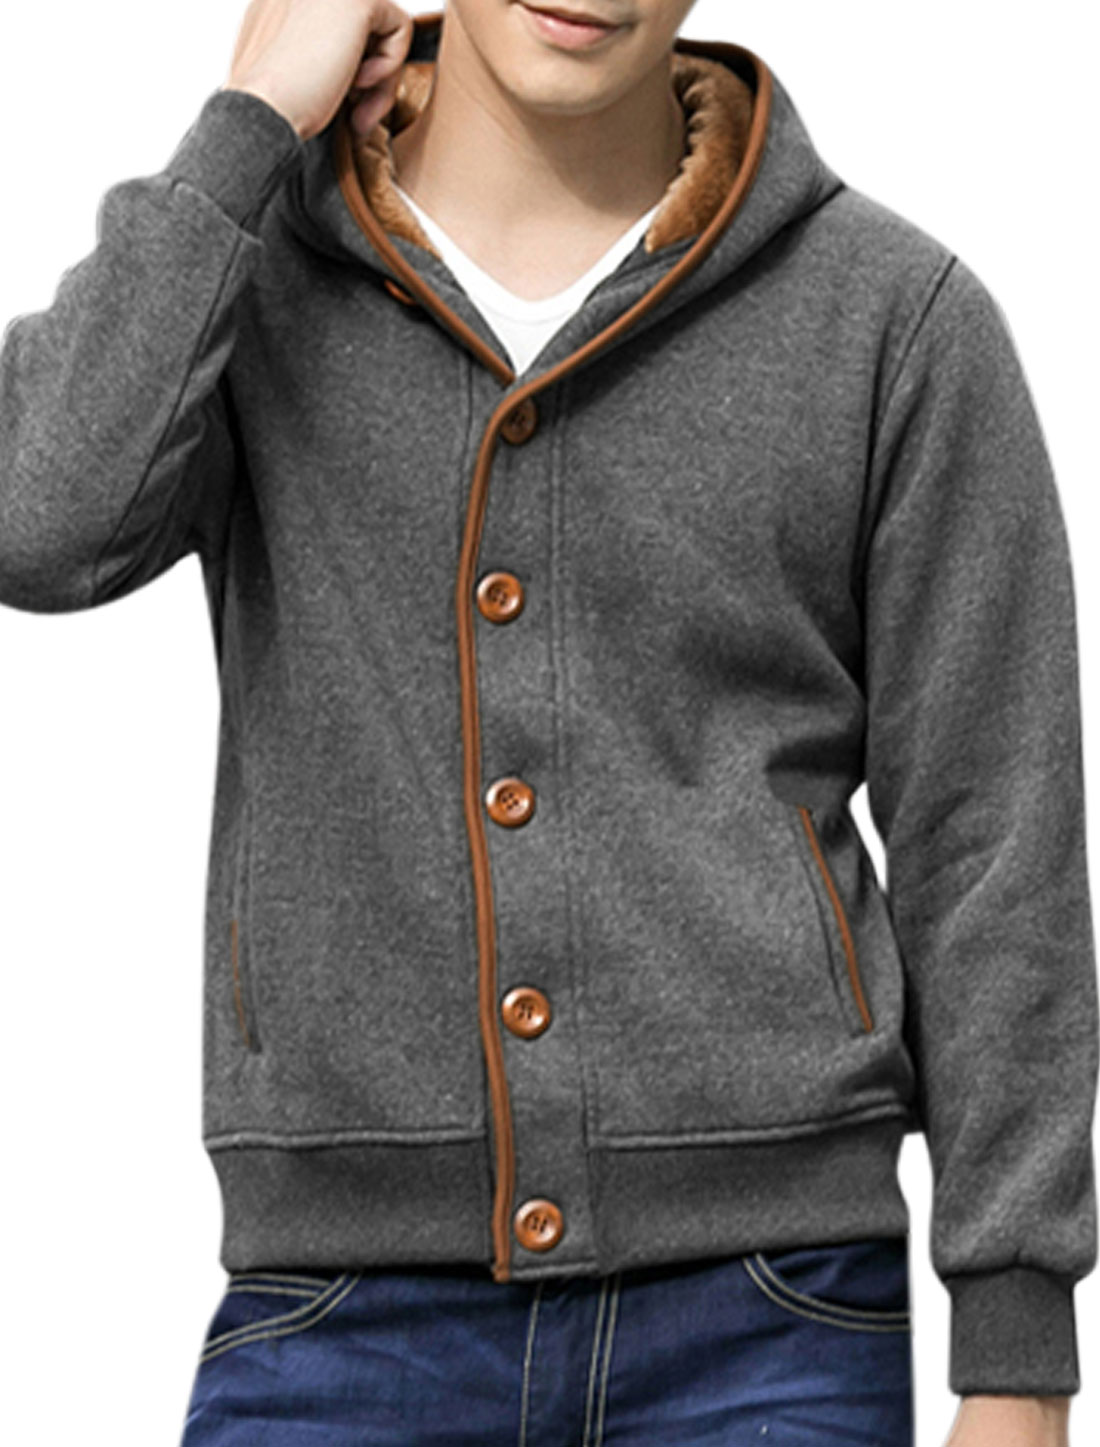 Man Long Sleeves Double Pocket Design Dark Gray Hooded Jacket M